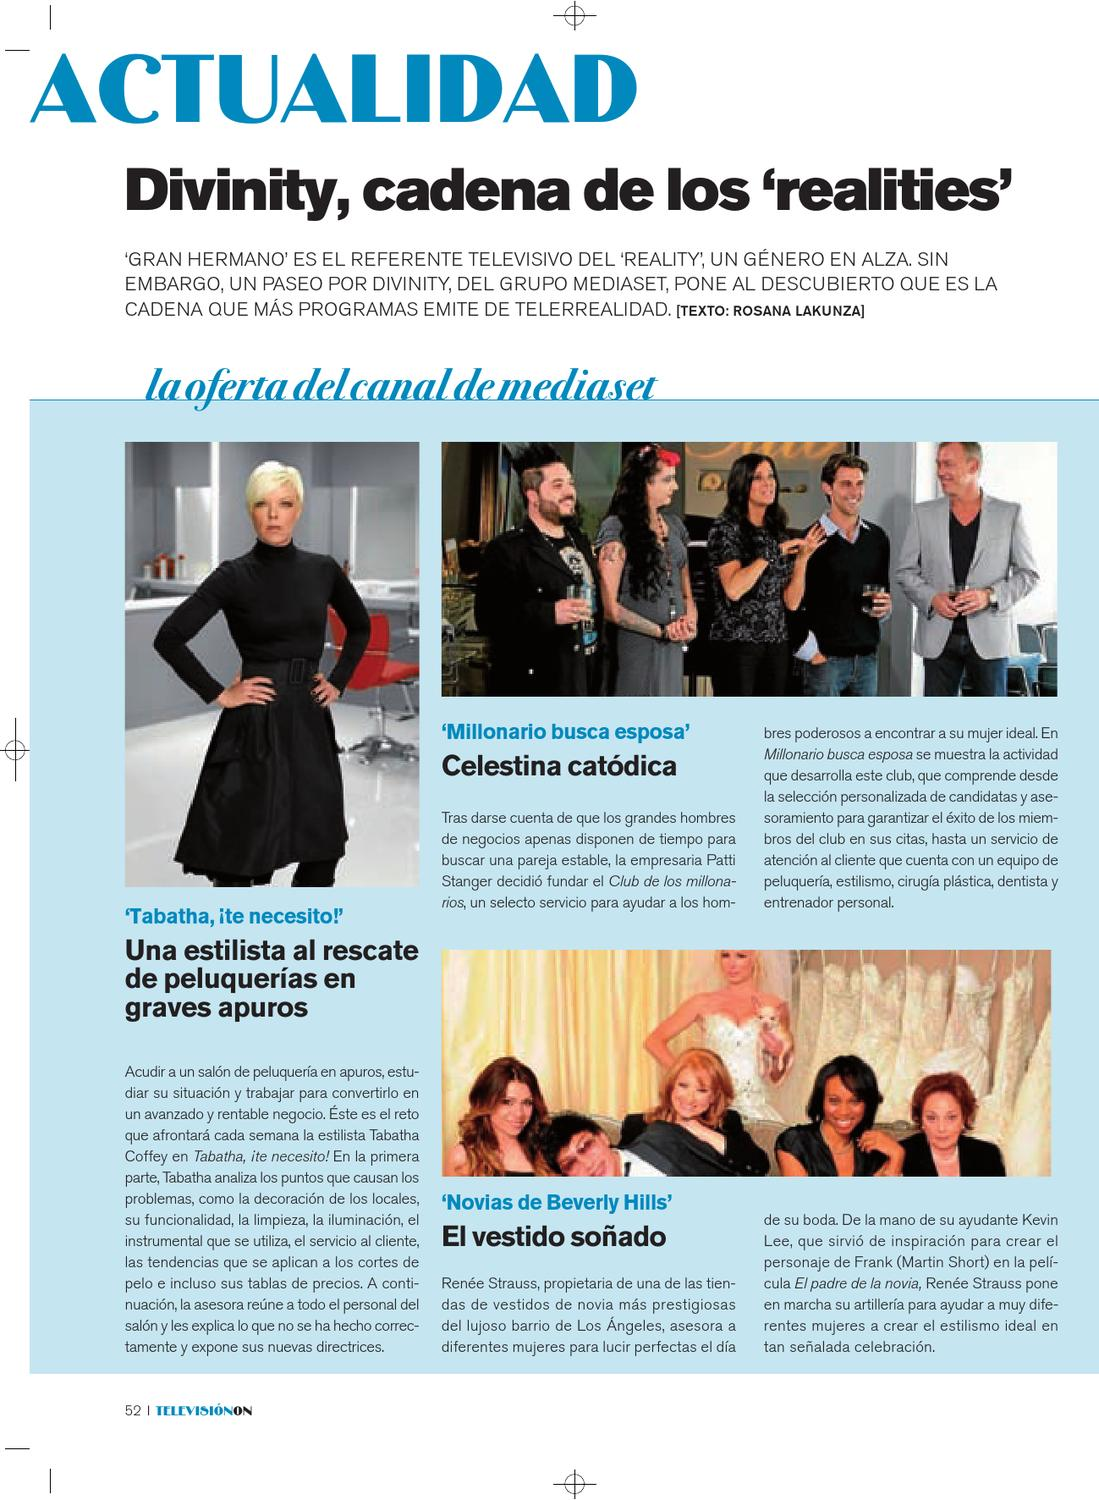 on230213 by Diario - issuu